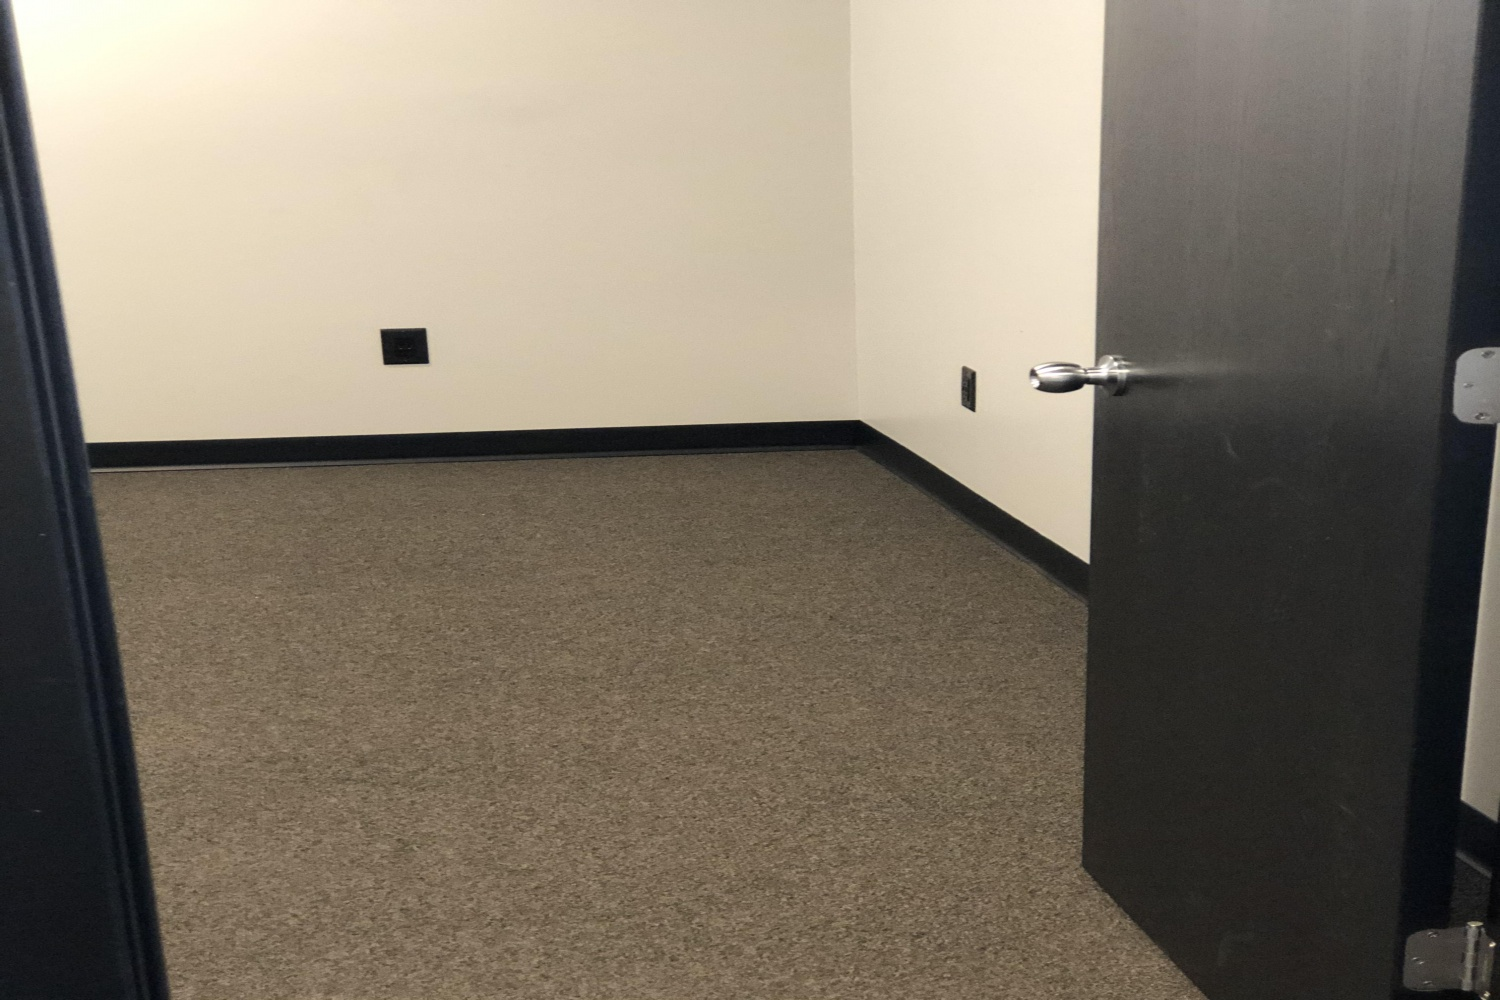 100 S Baldwin ST, Madison, Wisconsin 53703, 2 Rooms Rooms,Office,For Lease,Madison Enterprise Center,S Baldwin,2,1028